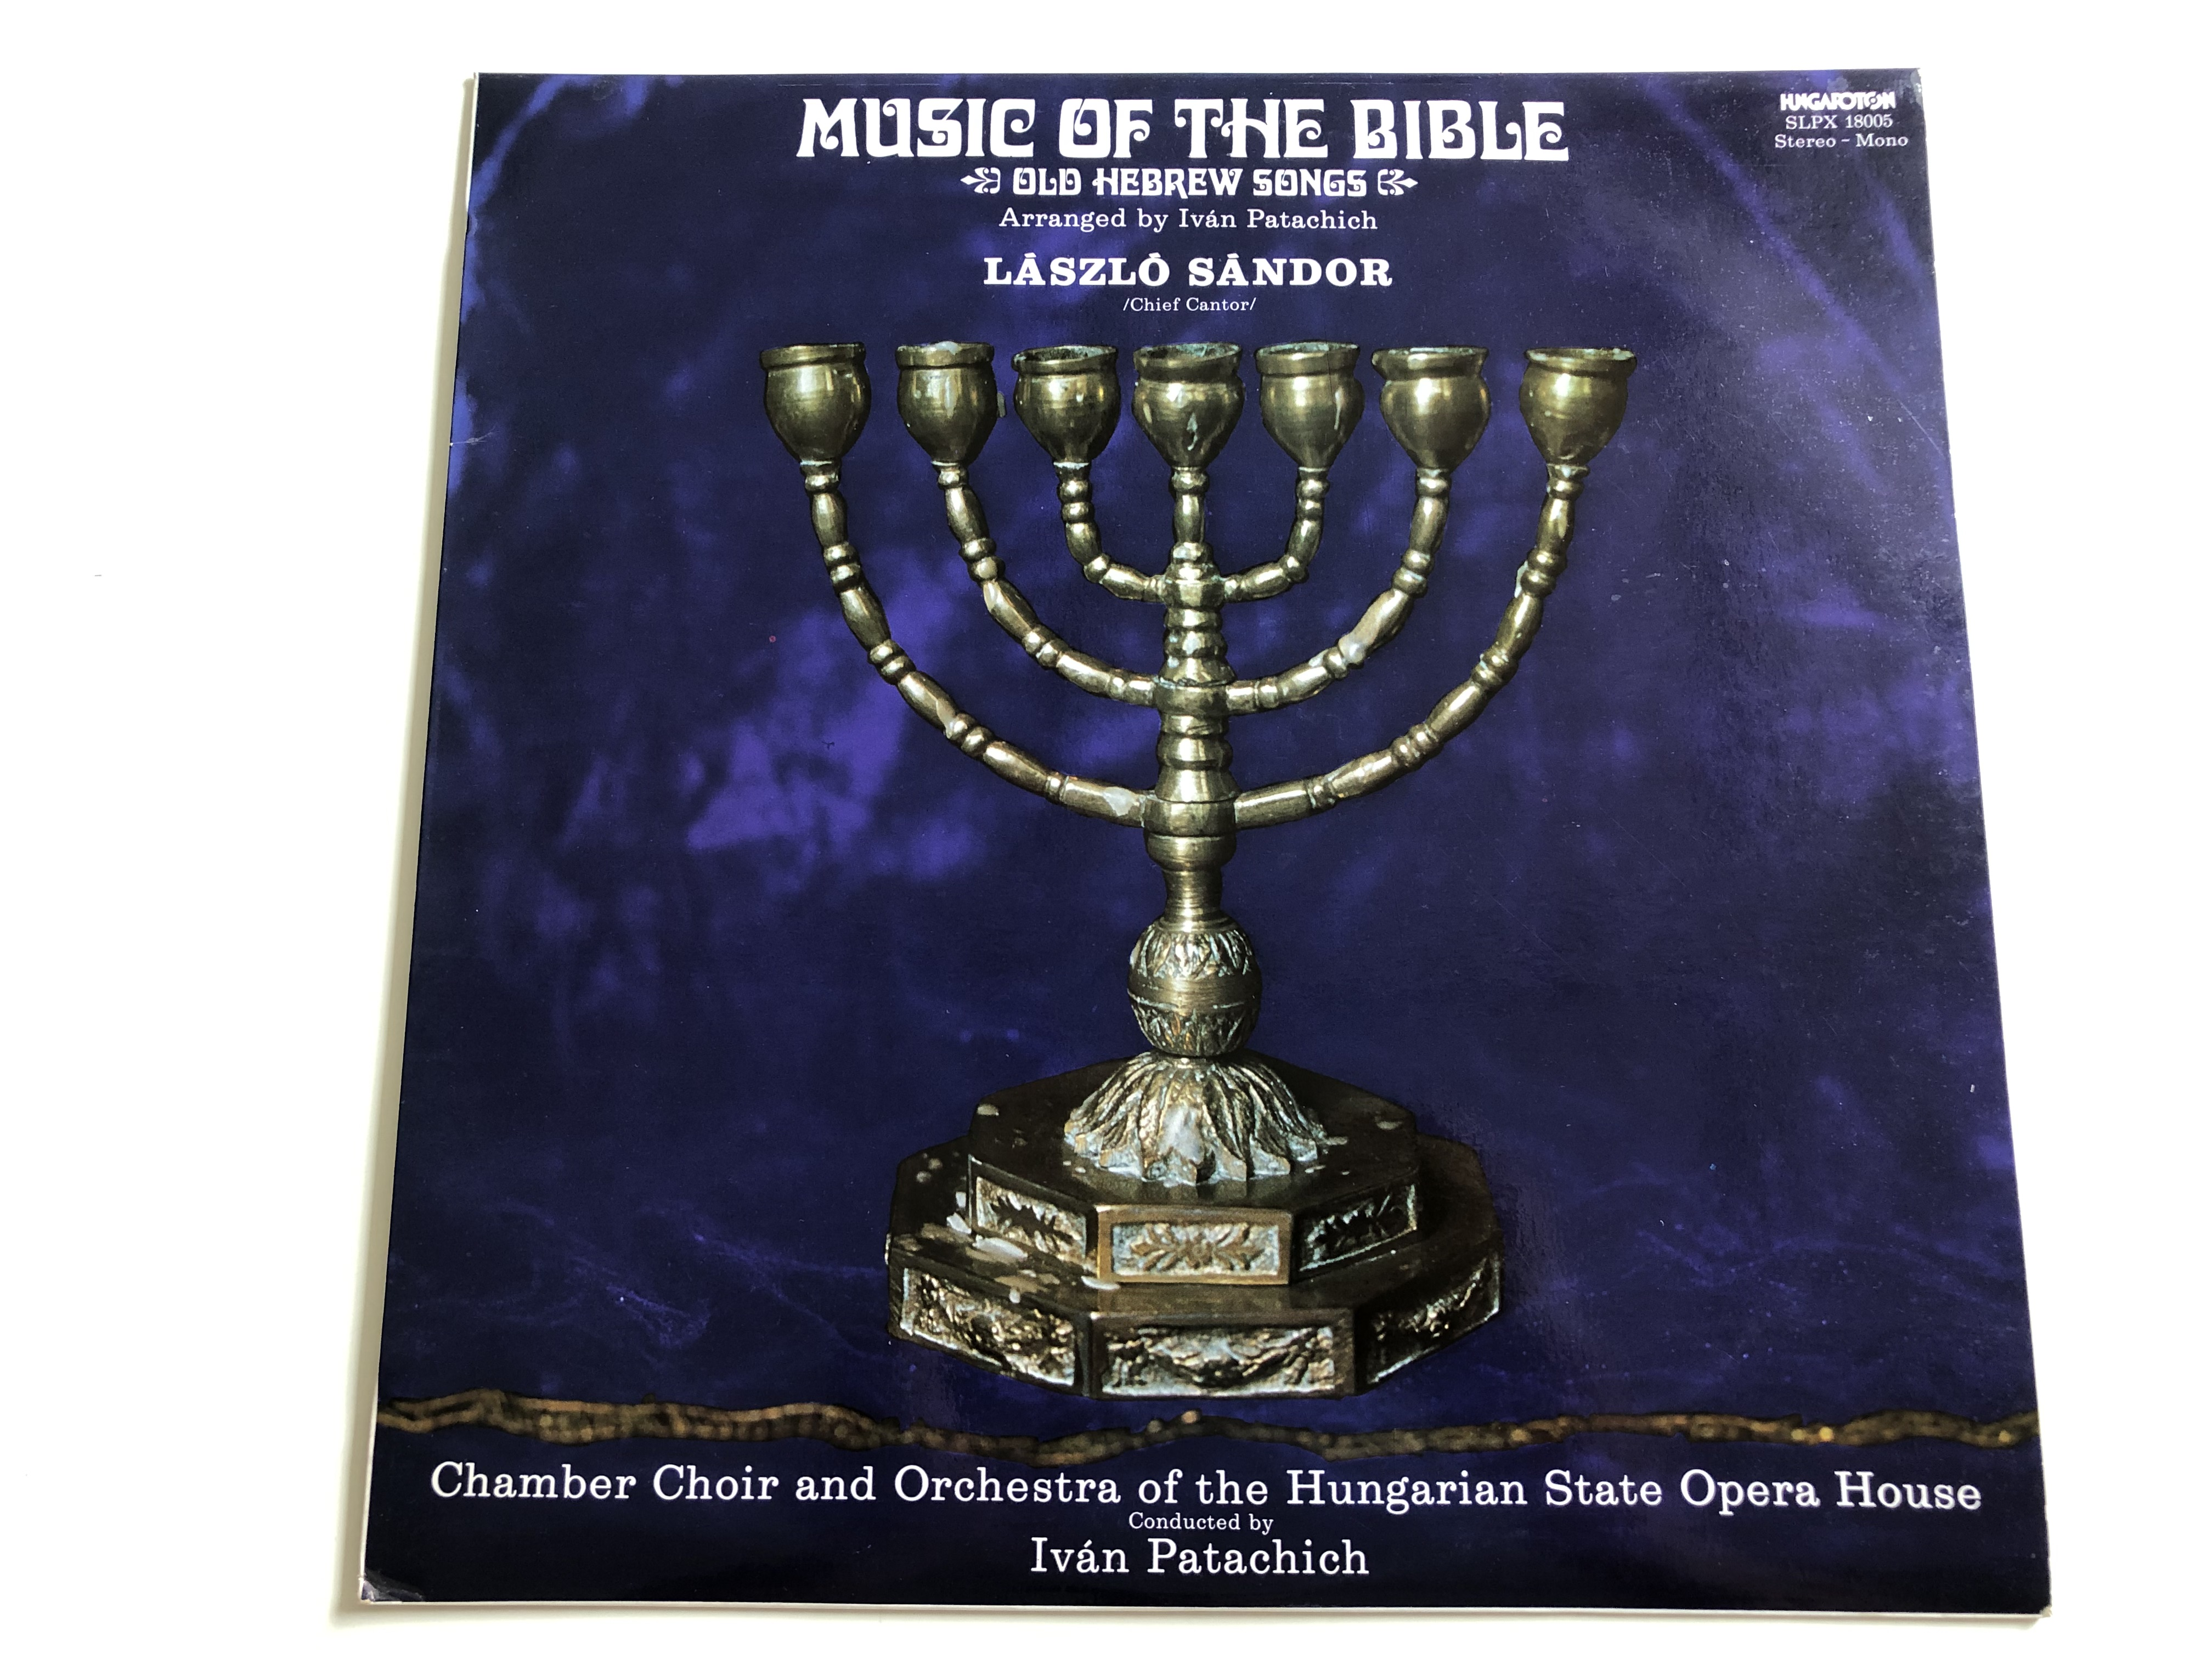 music-of-the-bible-old-hebrew-songs-l-szl-s-ndor-chamber-choir-and-orchestra-of-the-hungarian-state-opera-house-conducted-iv-n-patachich-hungaroton-lp-stereo-mono-slpx-18005-1-.jpg